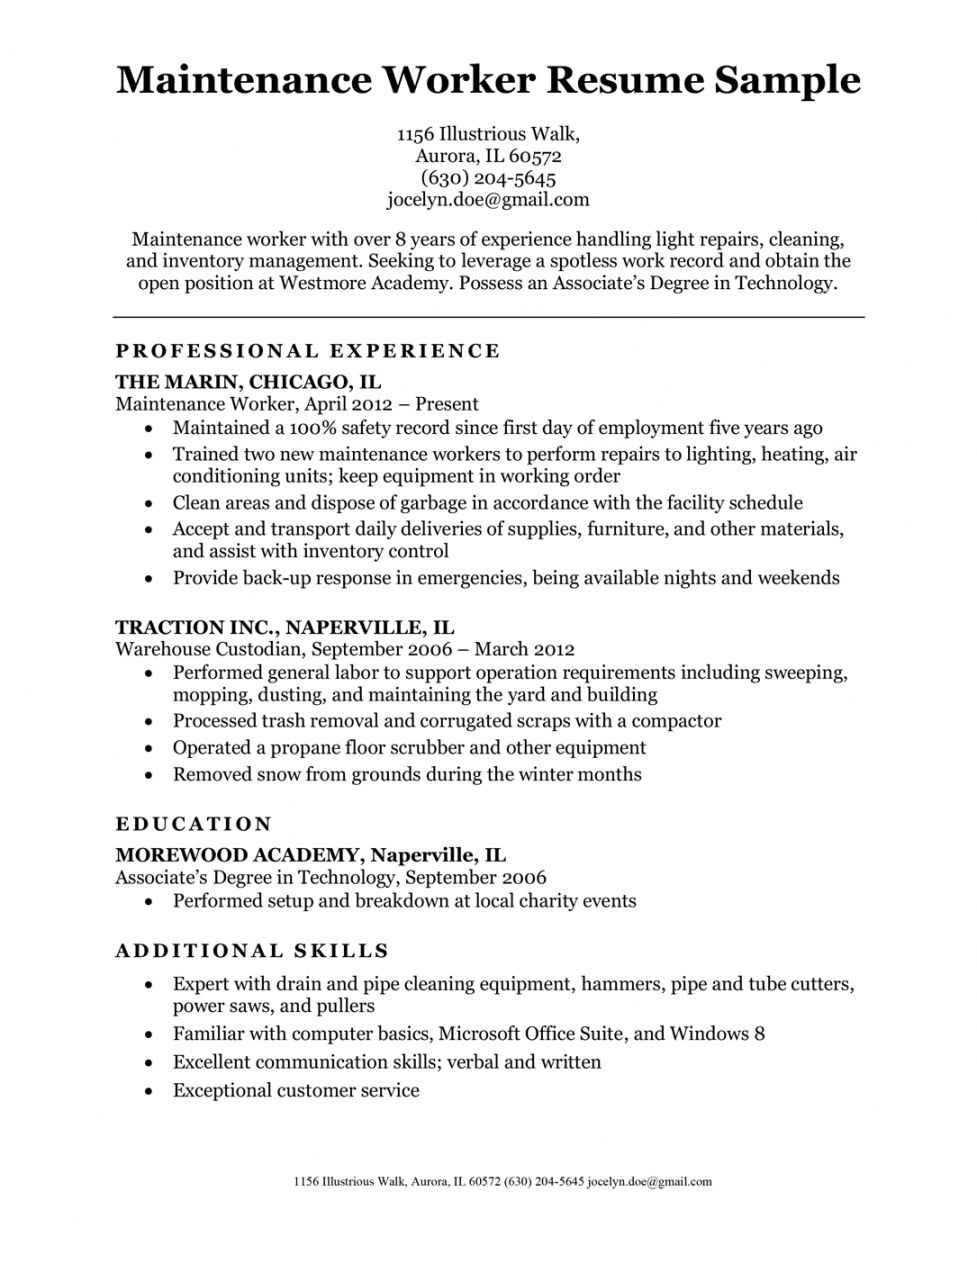 Get Our Sample Of Building Maintenance Job Description Template For Free Basic Resume Examples Good Resume Examples Resume Examples